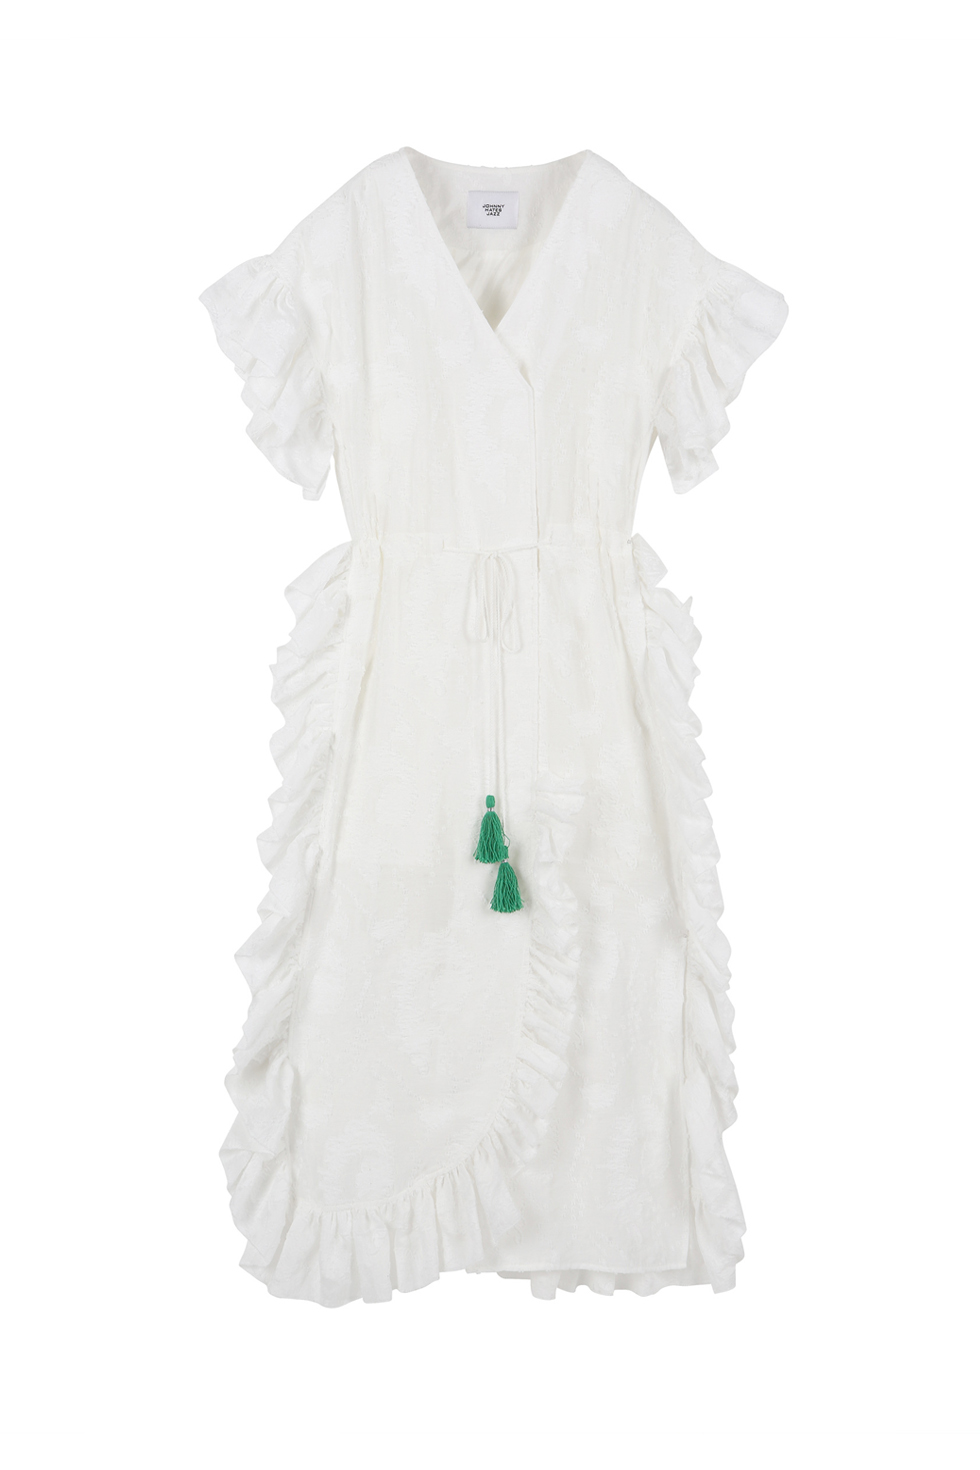 OVERSIZED RUFFLE DRESS - WHITE